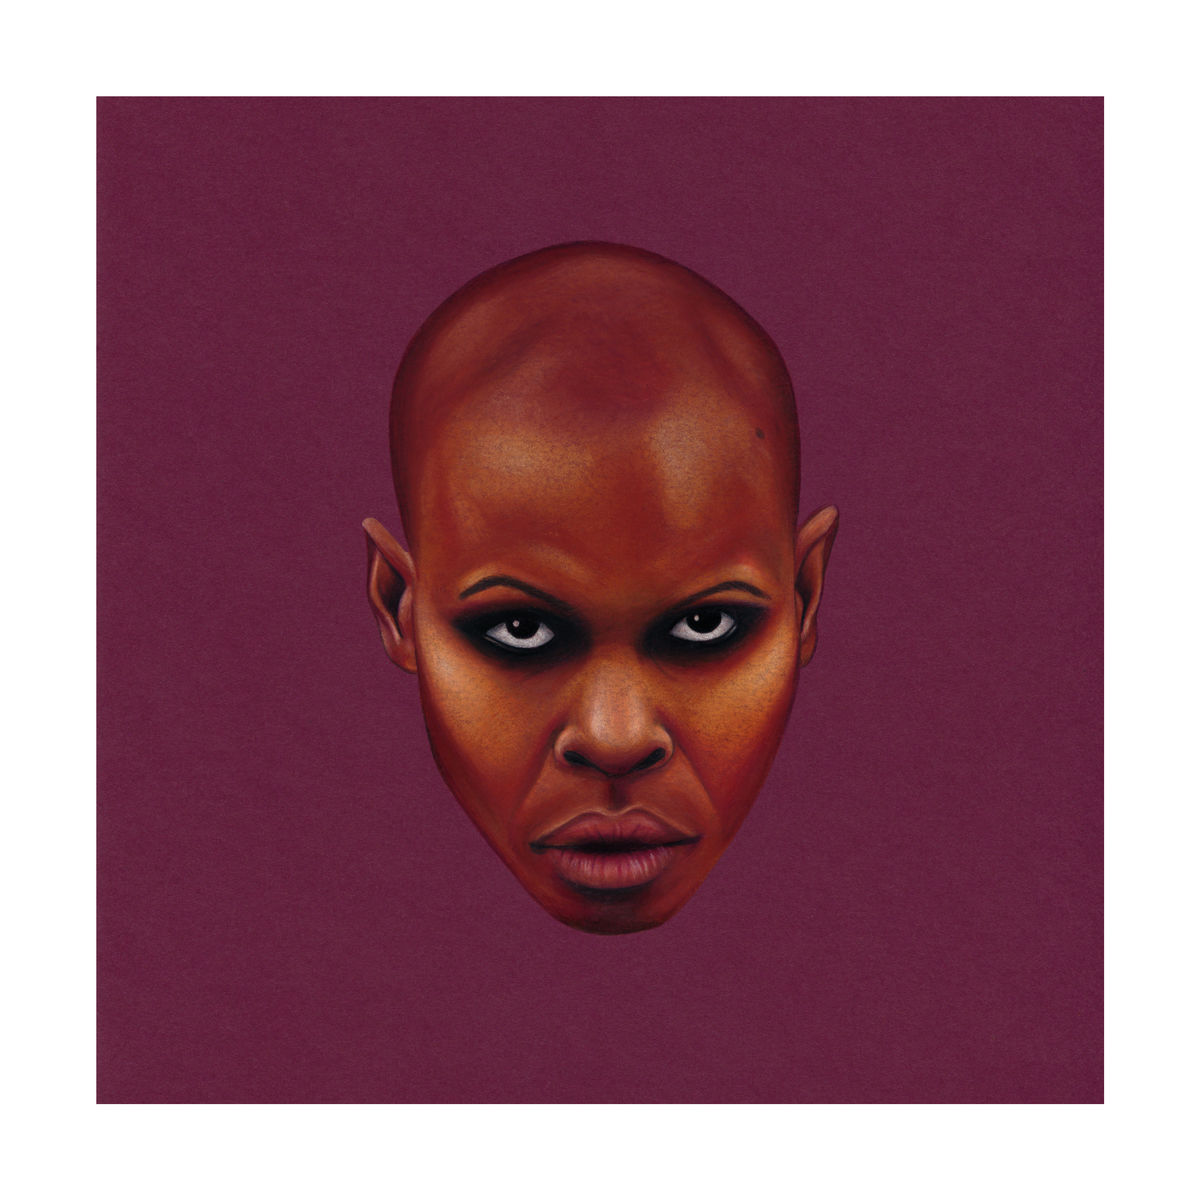 A portrait of Skunk Anansie front woman, Skin. Colour Pencil on Card. Available as a Giclee Print.